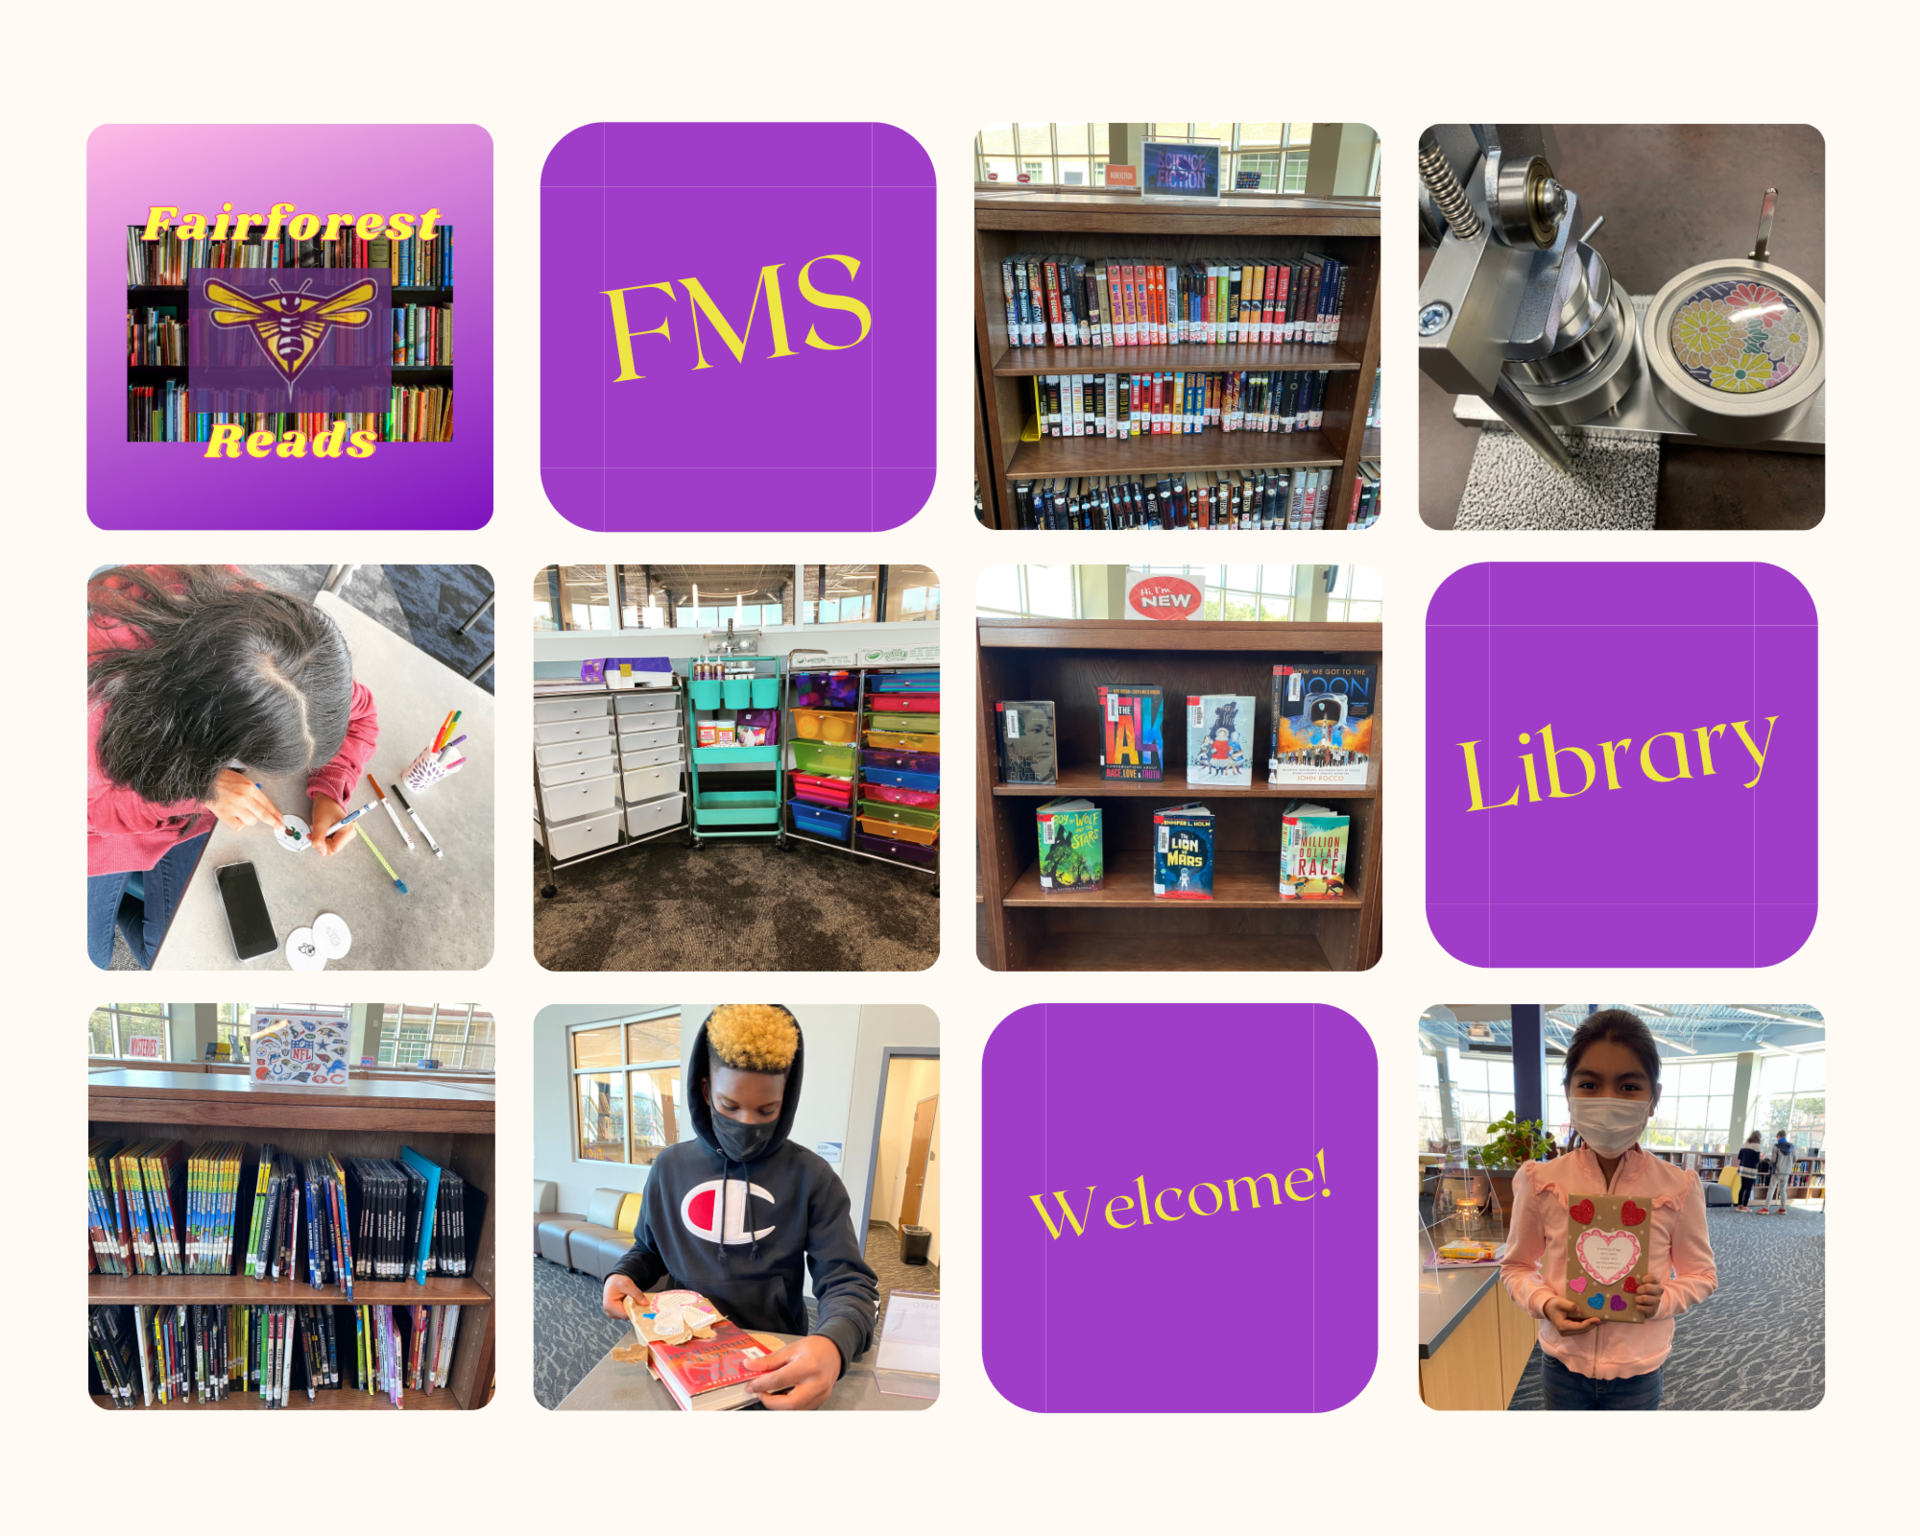 Collage of students and books in the library